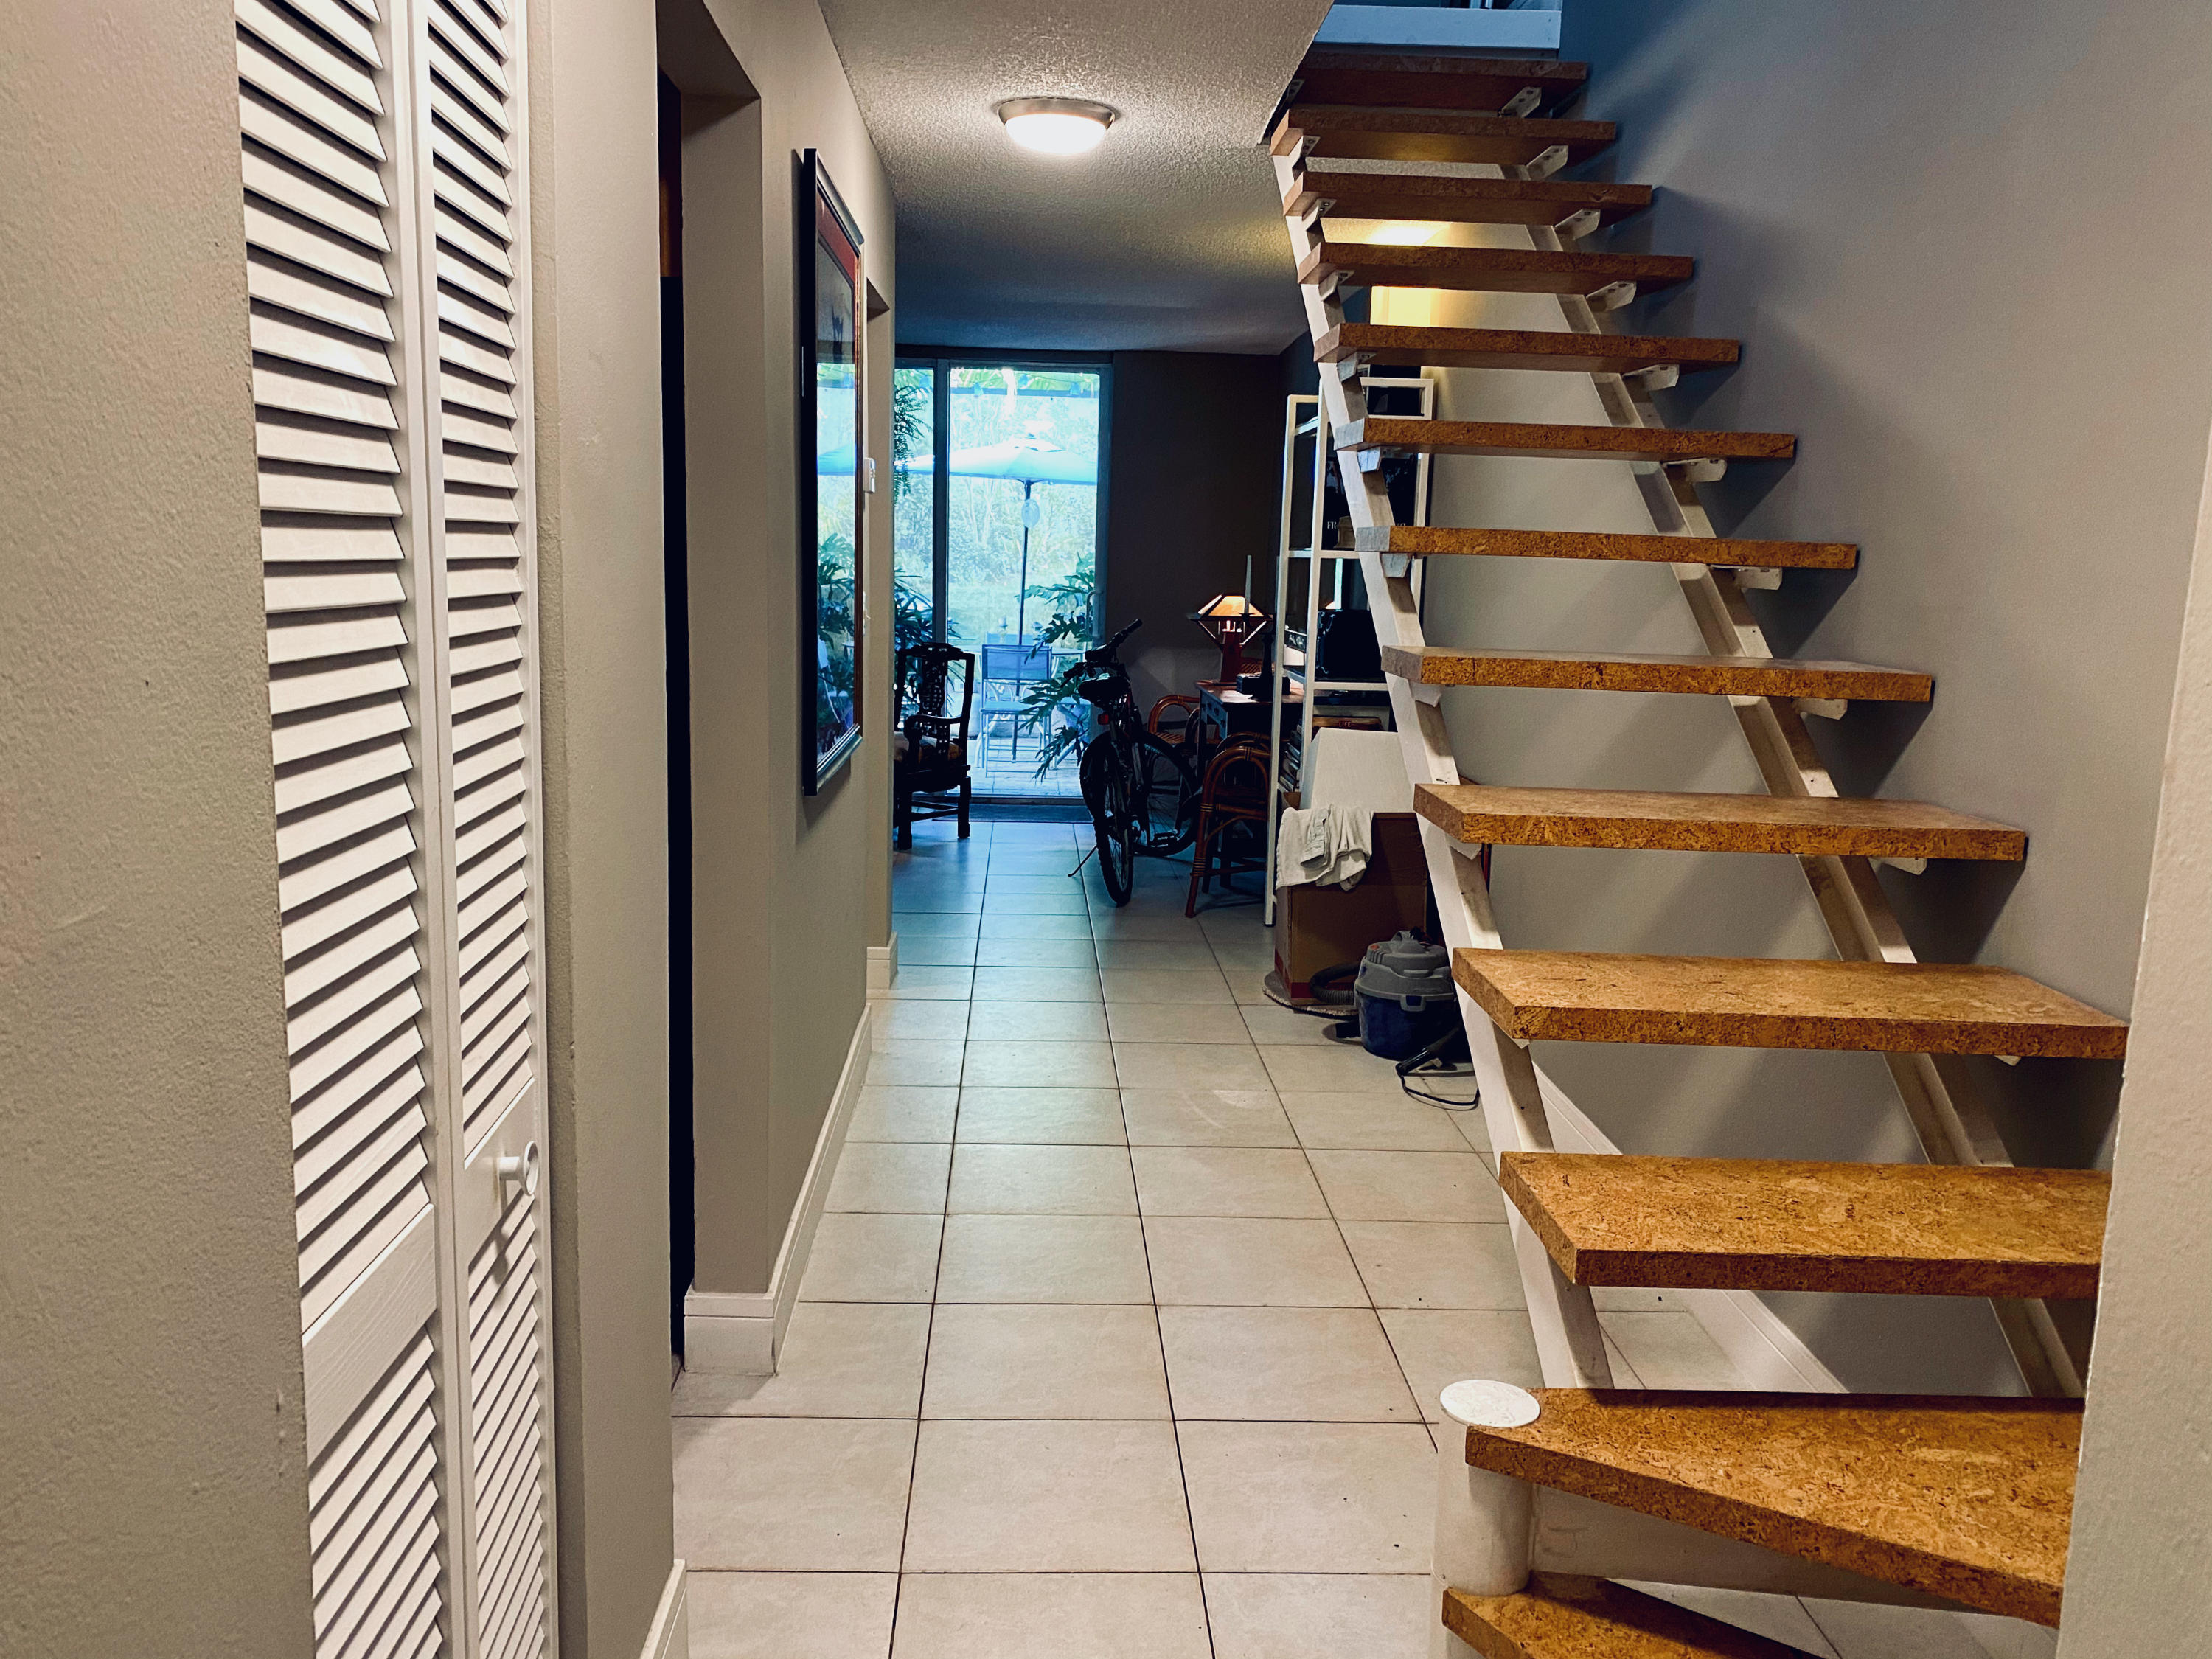 Home for sale in Townhouse Isle Wilton Manors Florida